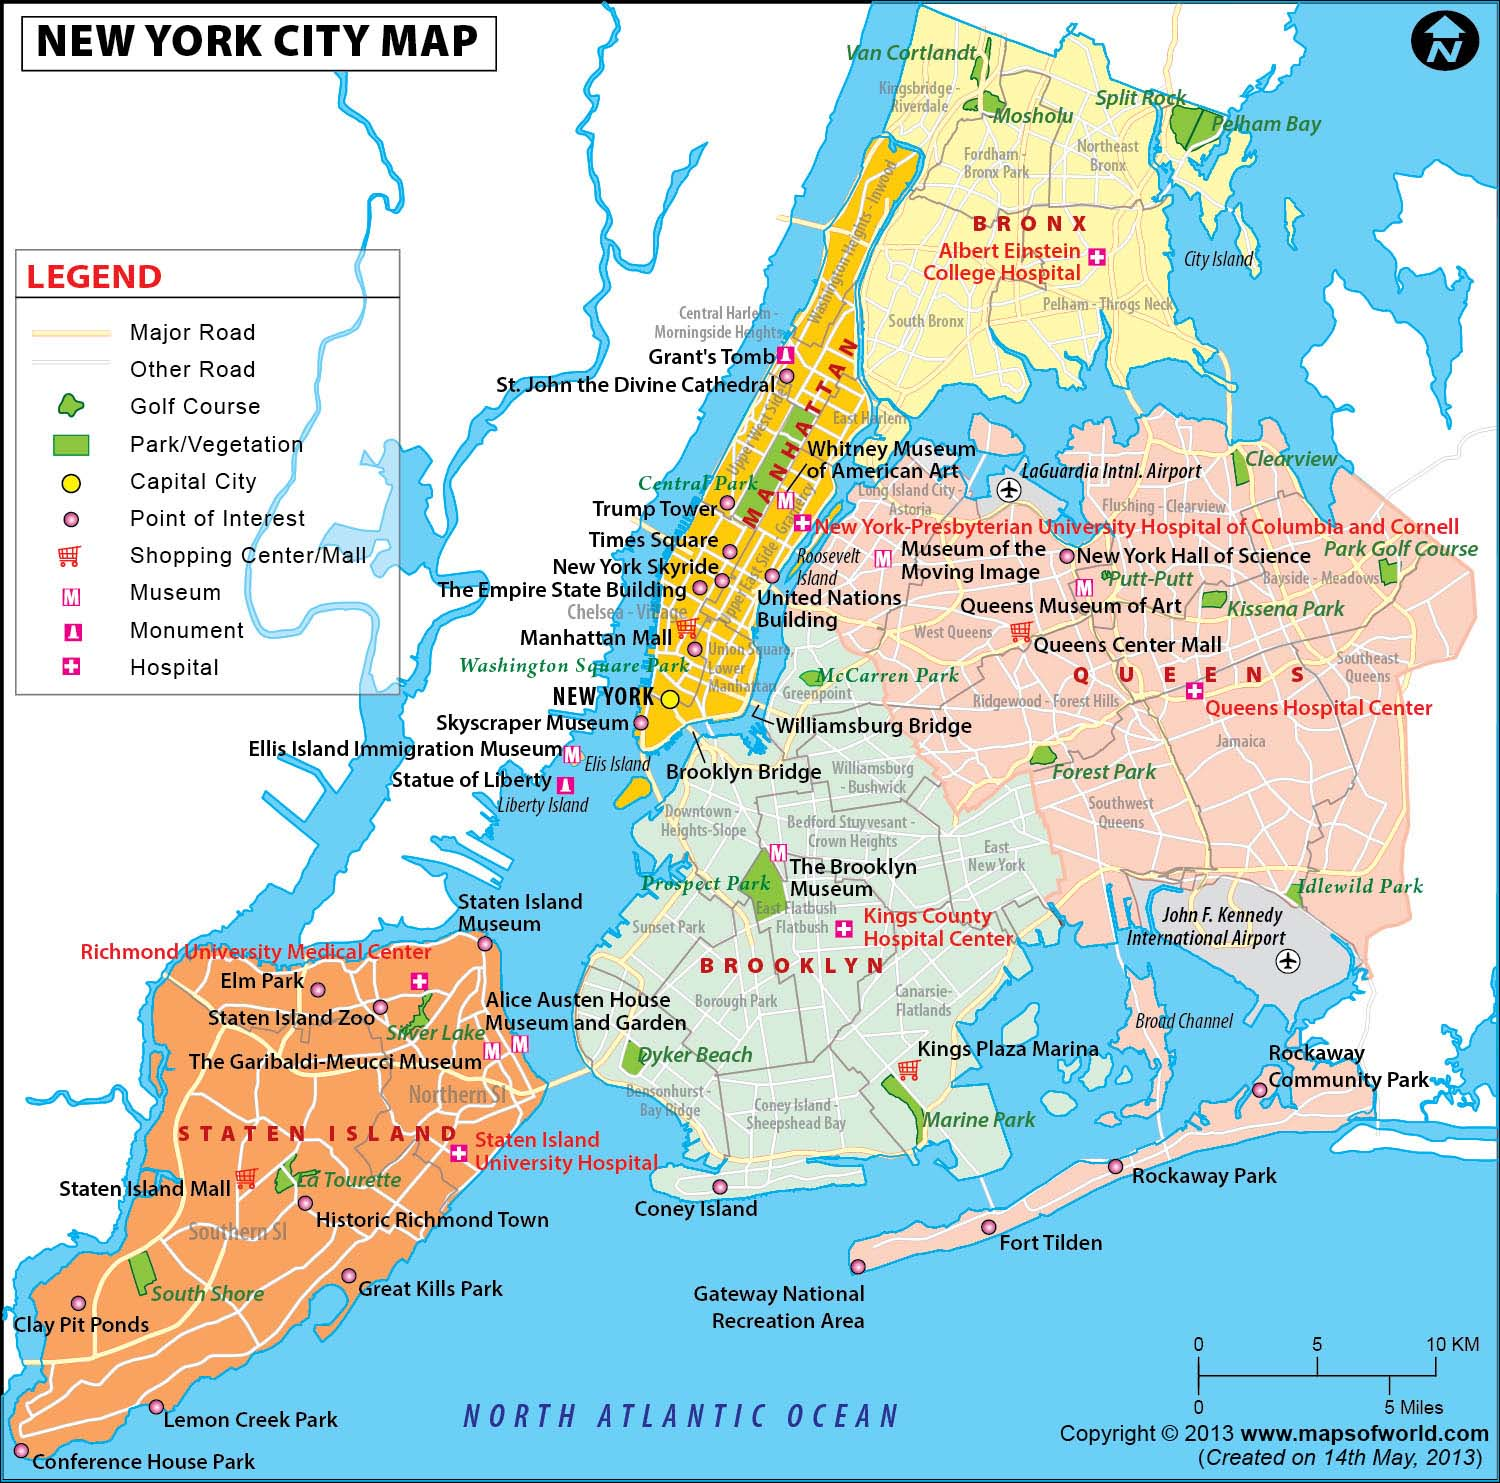 NYC Map Map of New York City Information and Facts of